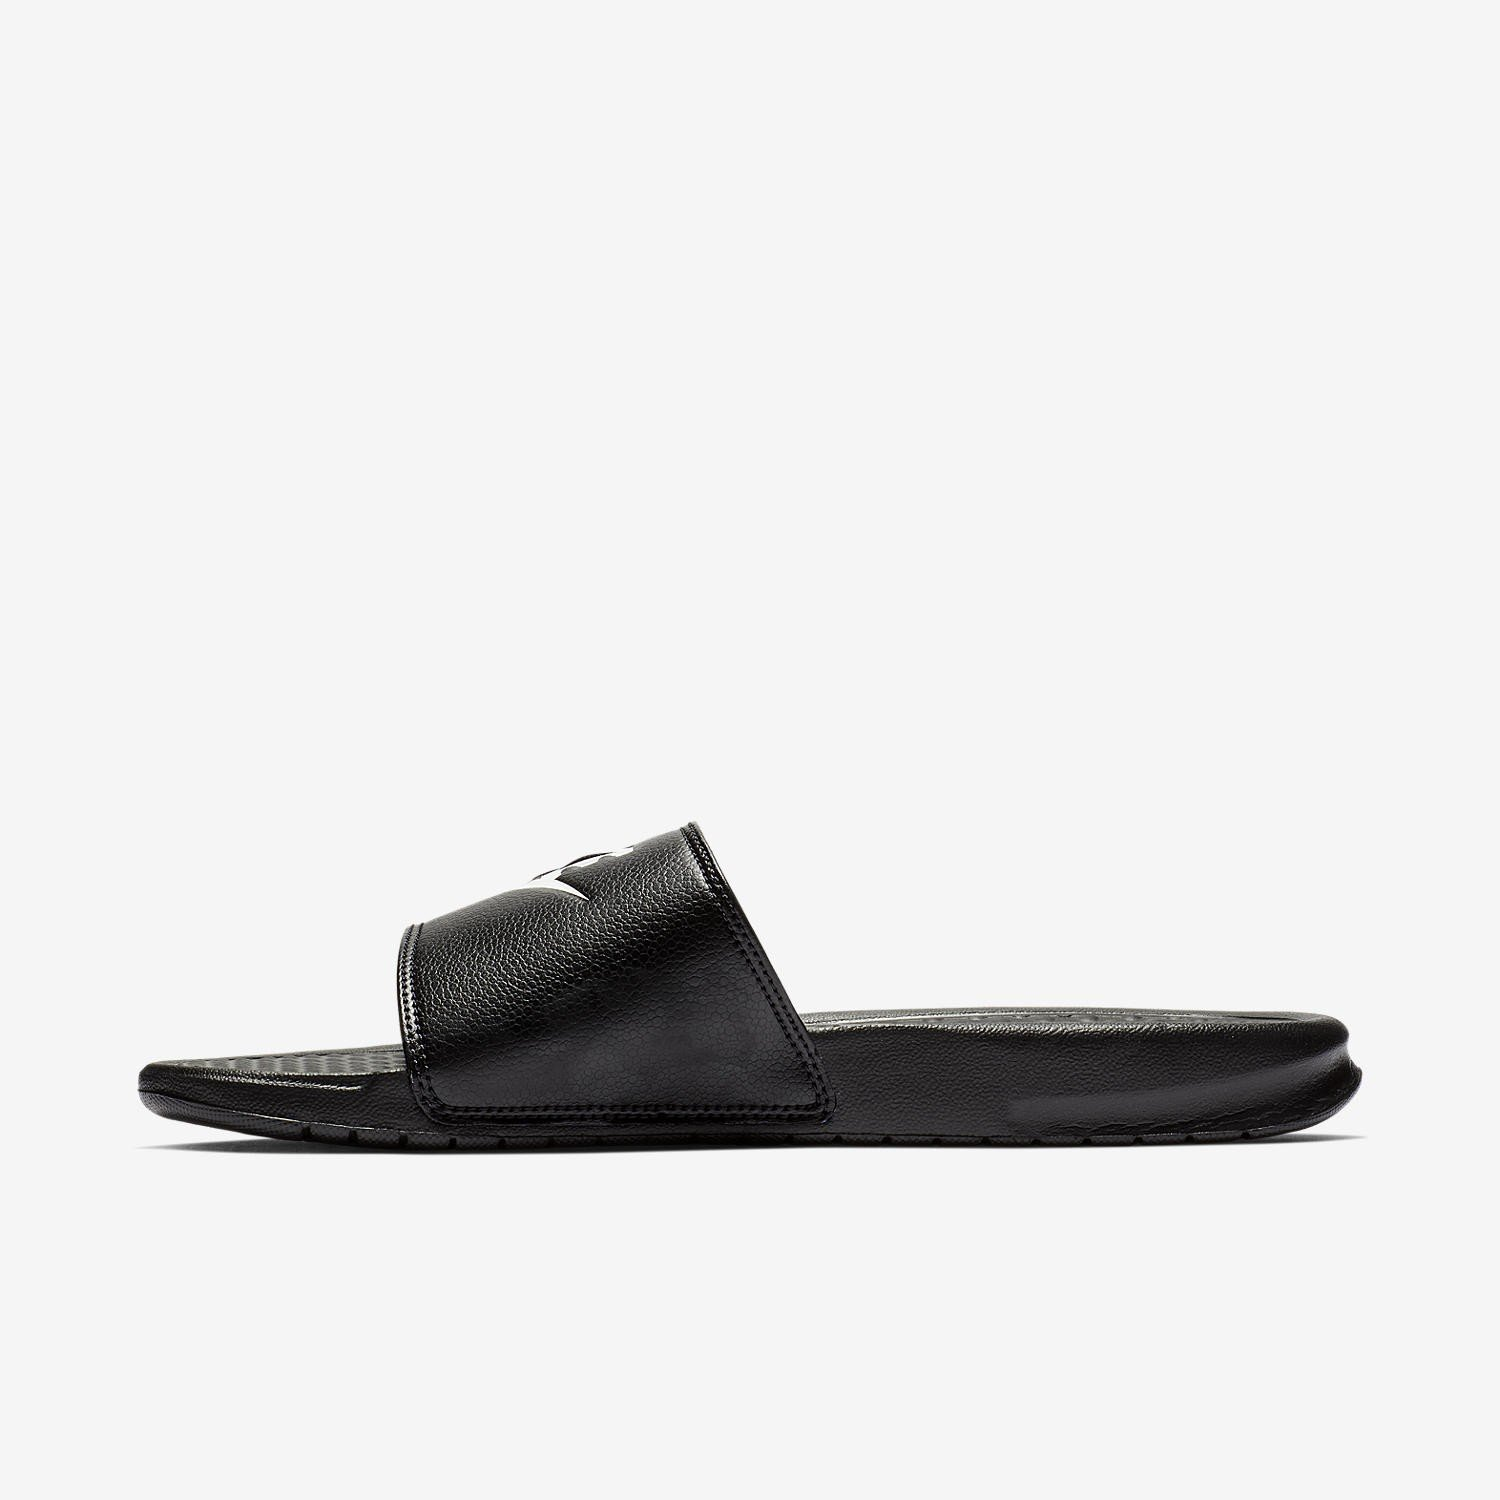 Klapki Nike Benassi Just Do It 343880 090